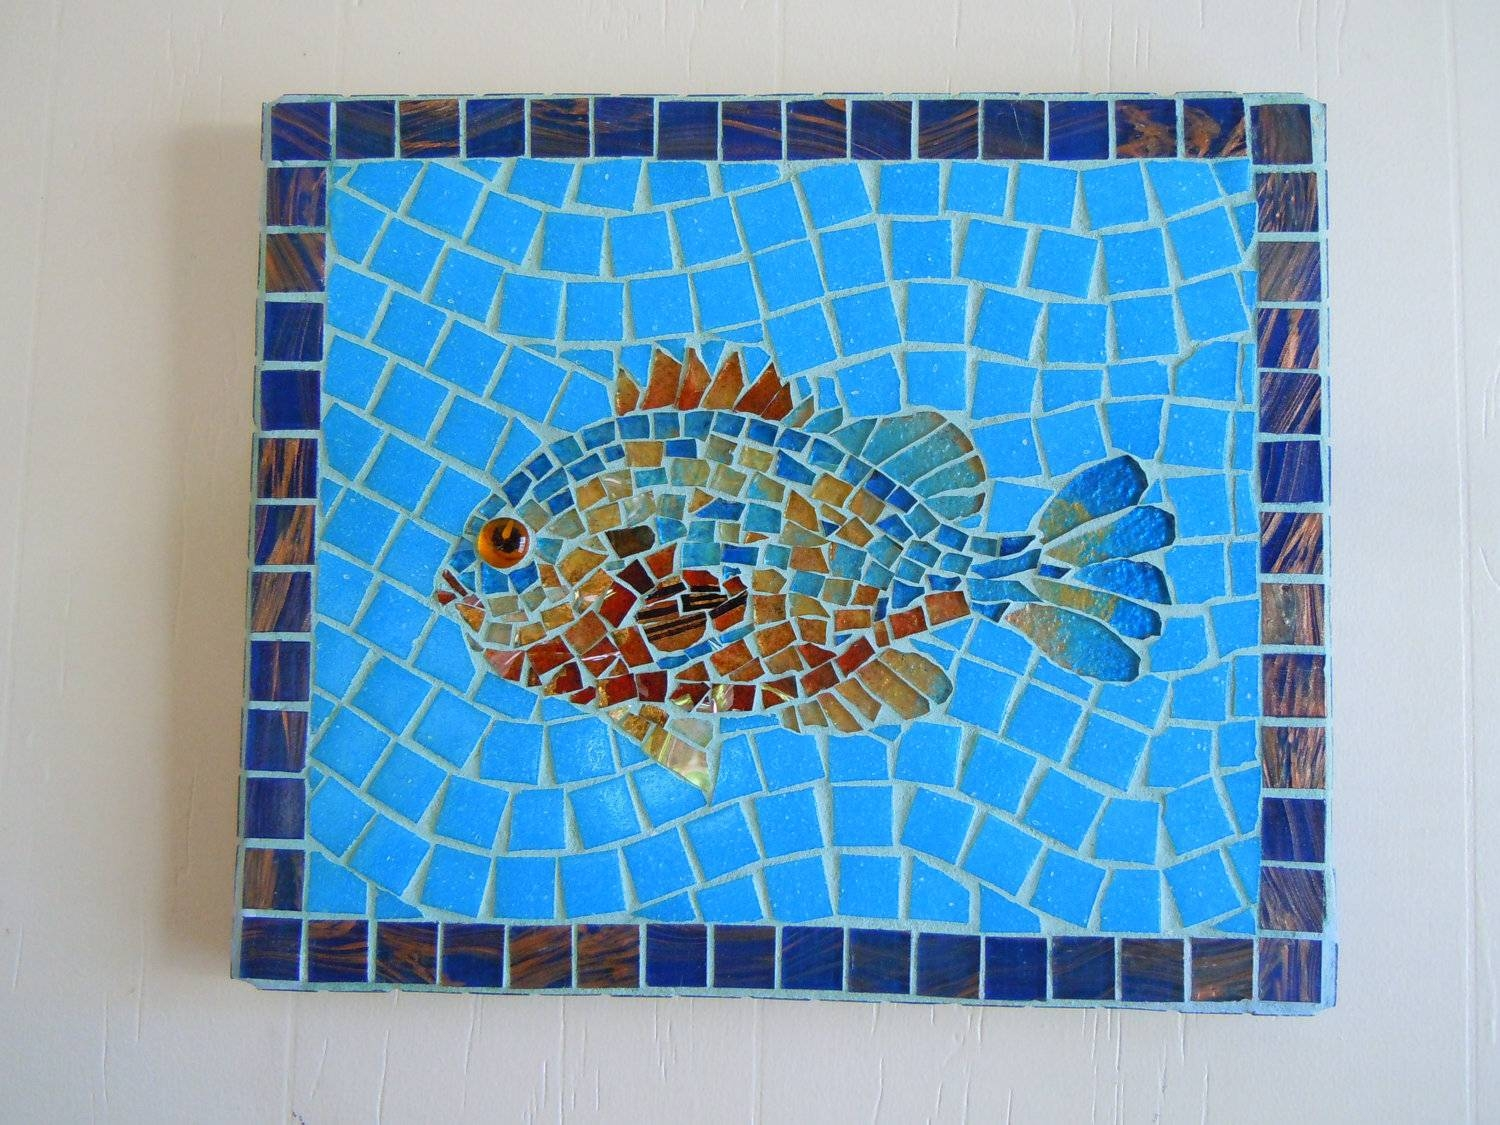 Mosaic Fish Home Decor Beach Cottage Decor Wall Art With Regard To Most Current Beach Cottage Wall Art (View 18 of 25)